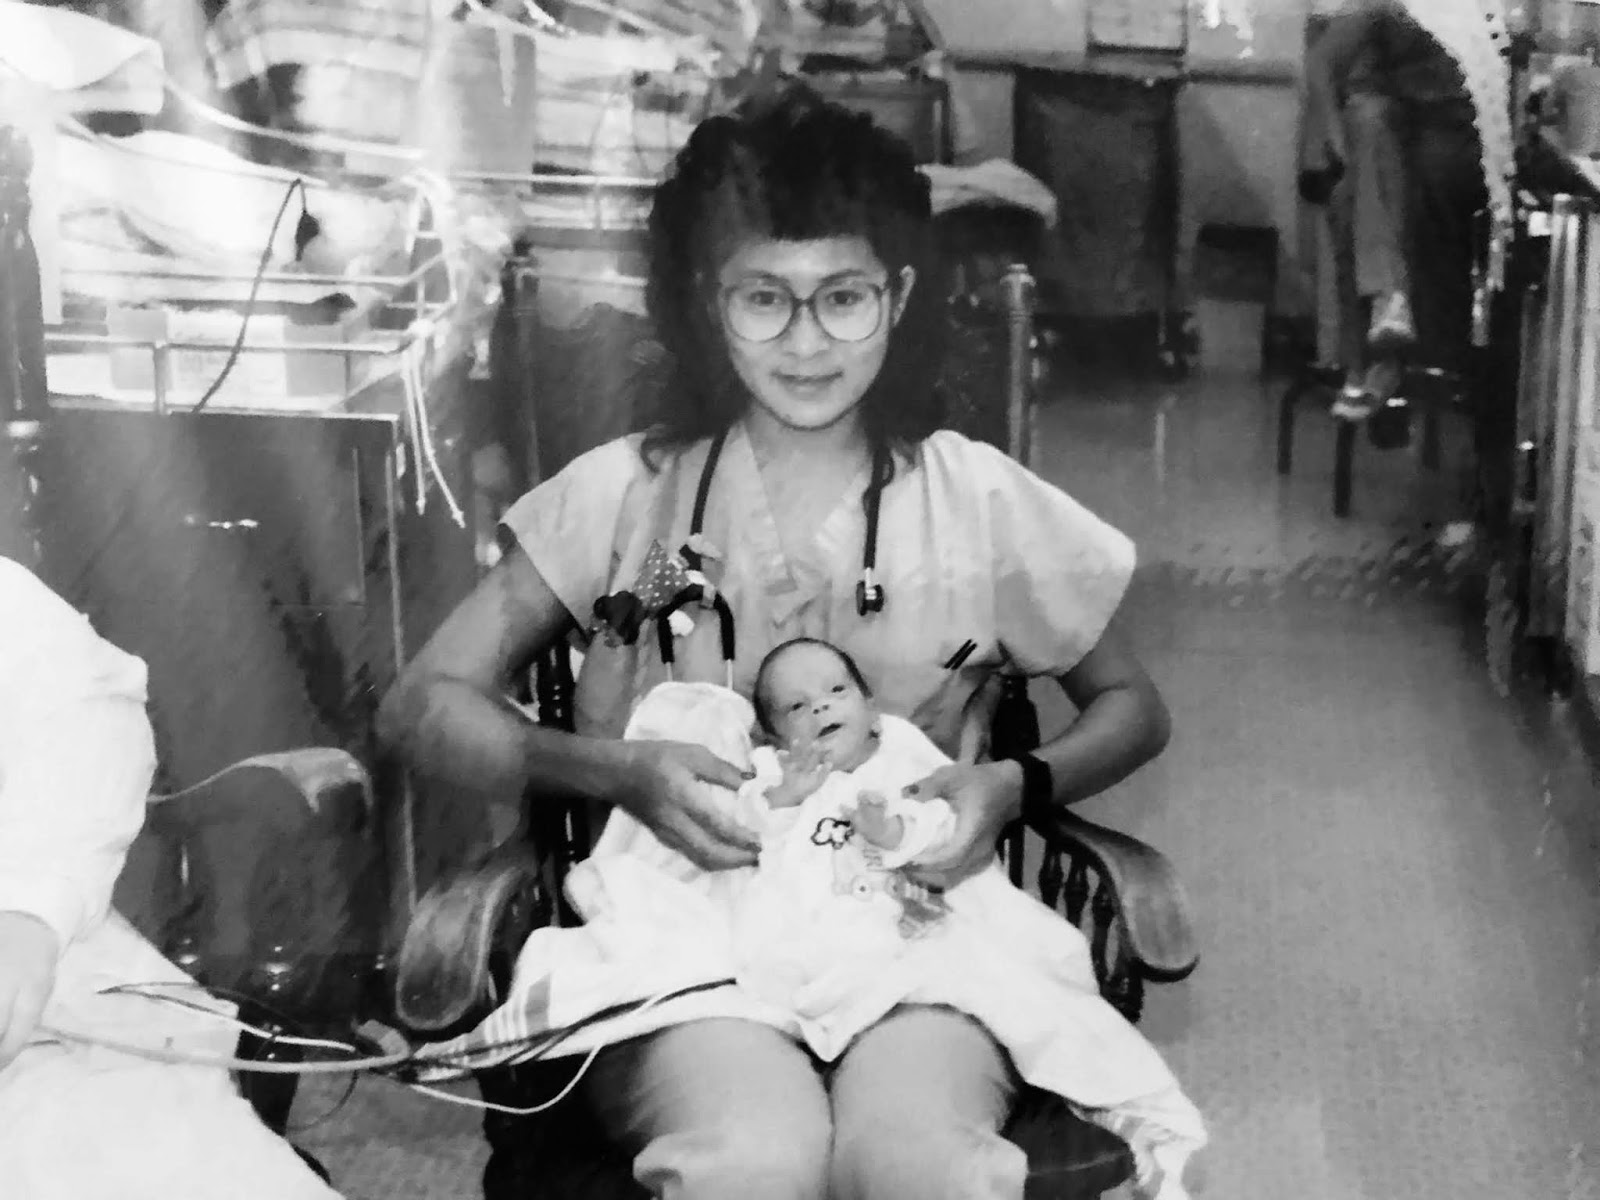 Vilma Wong, 54, is an NICU nurse at Lucile Packard Children's Hospital in Palo Alto, California, where she has worked for 32 years.